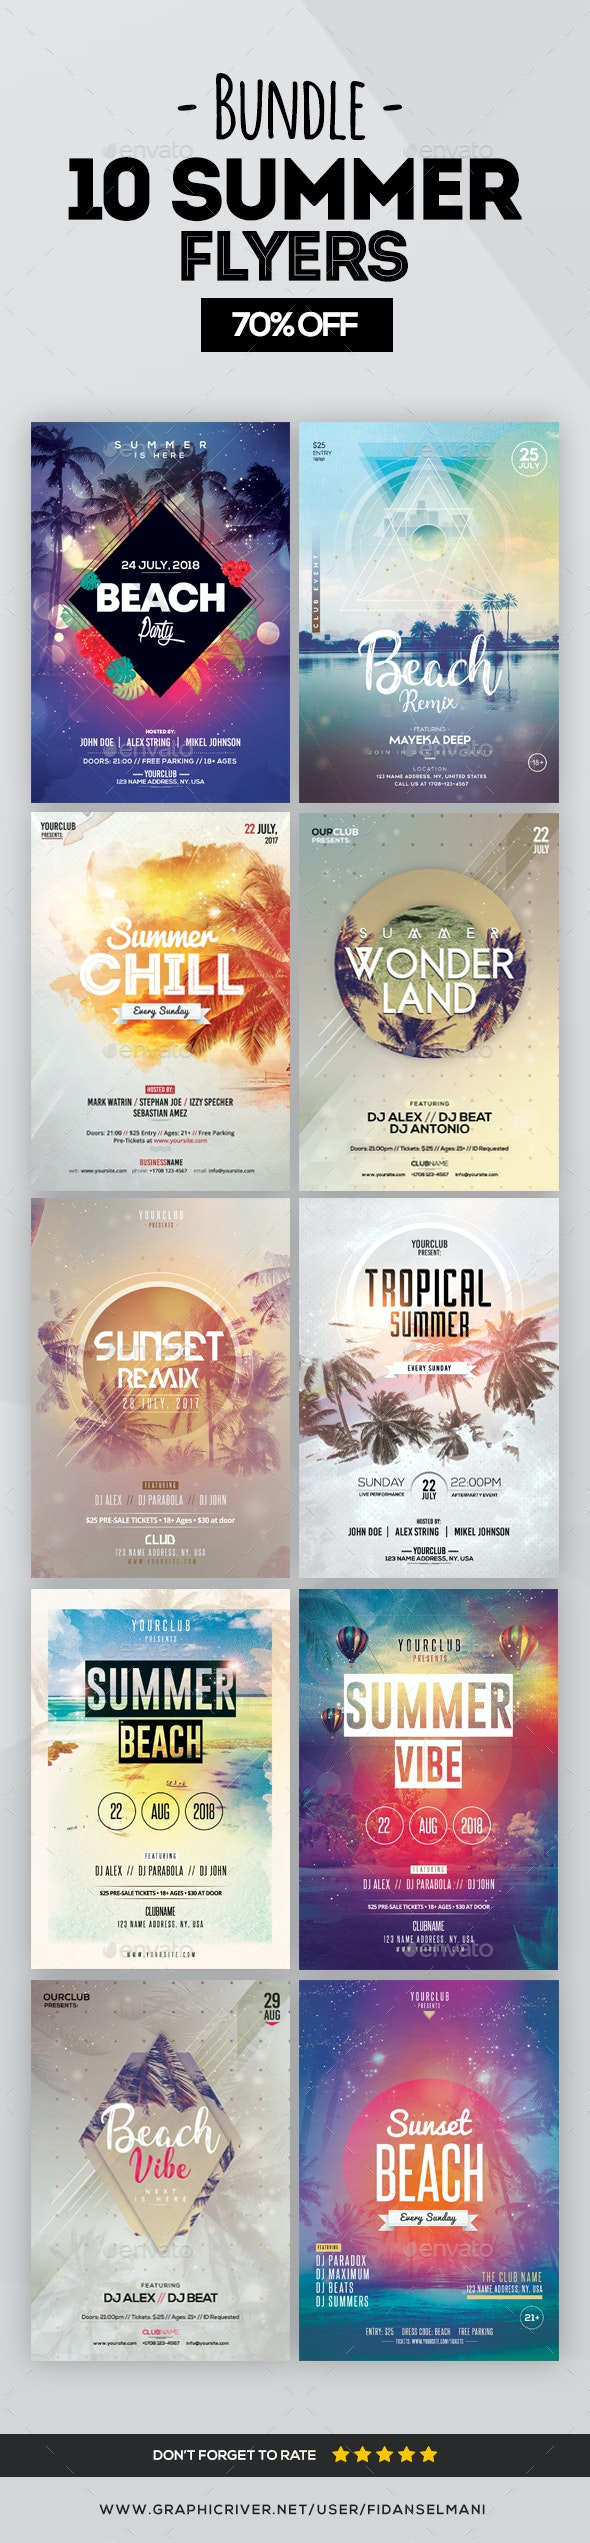 10 Summer Flyers - Bundle 70% OFF - Flyers Print Templates